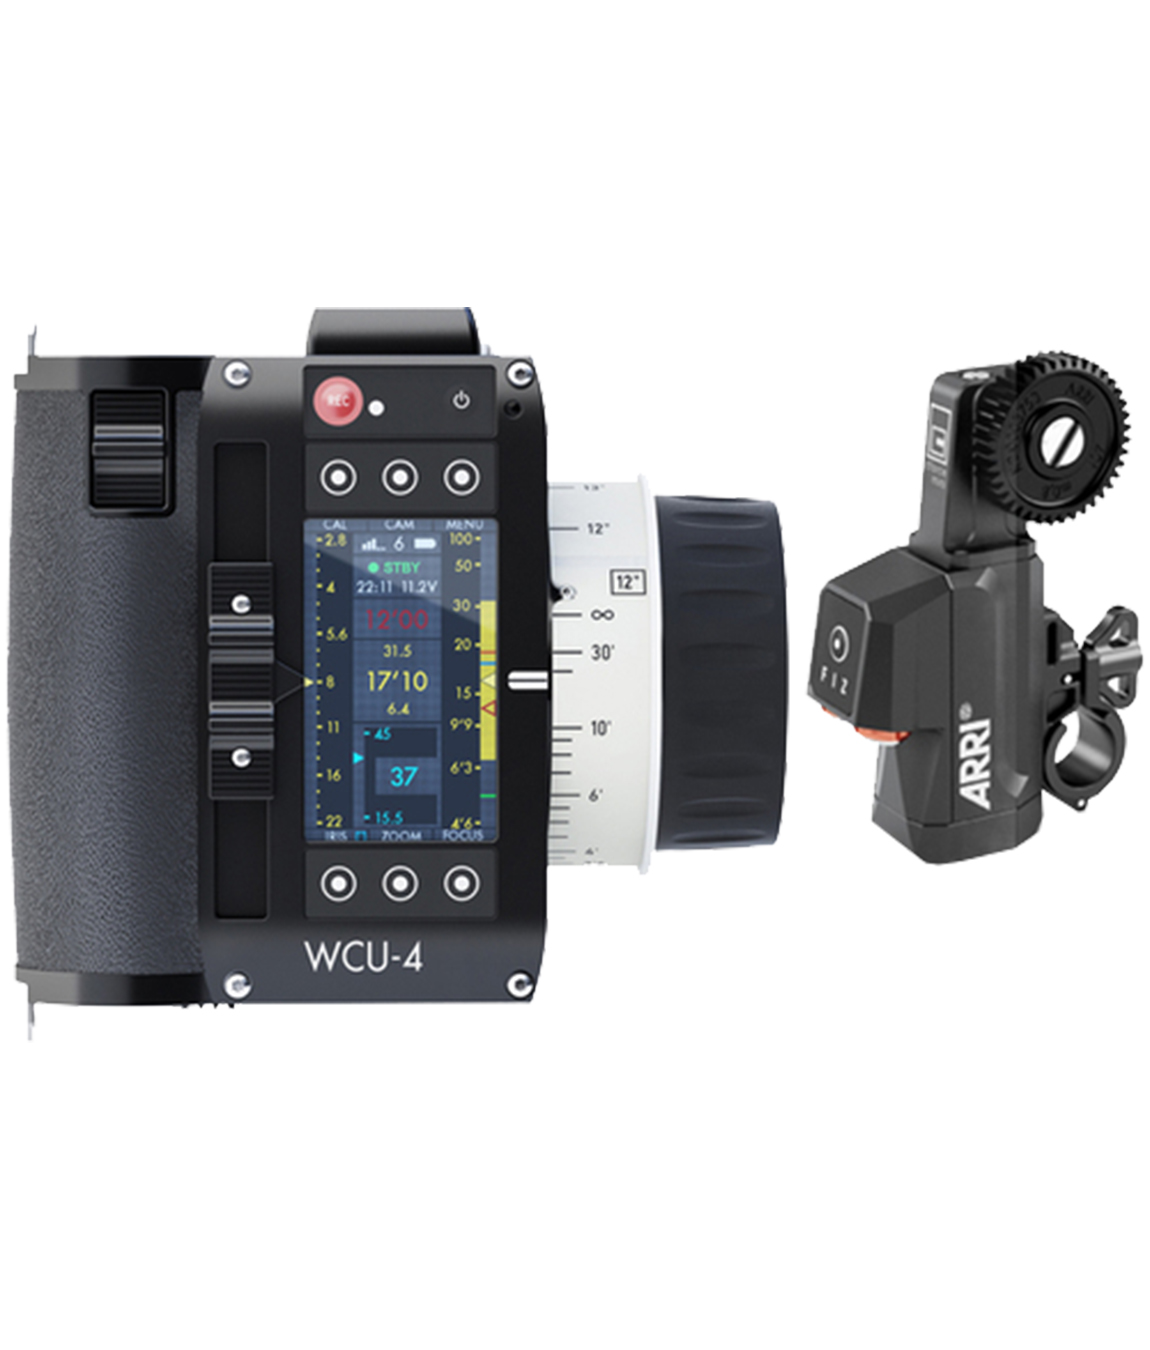 Arri Wireless Compact Unit WCU-4 FIZ System Rental / Hire nyc nj pa brooklyn